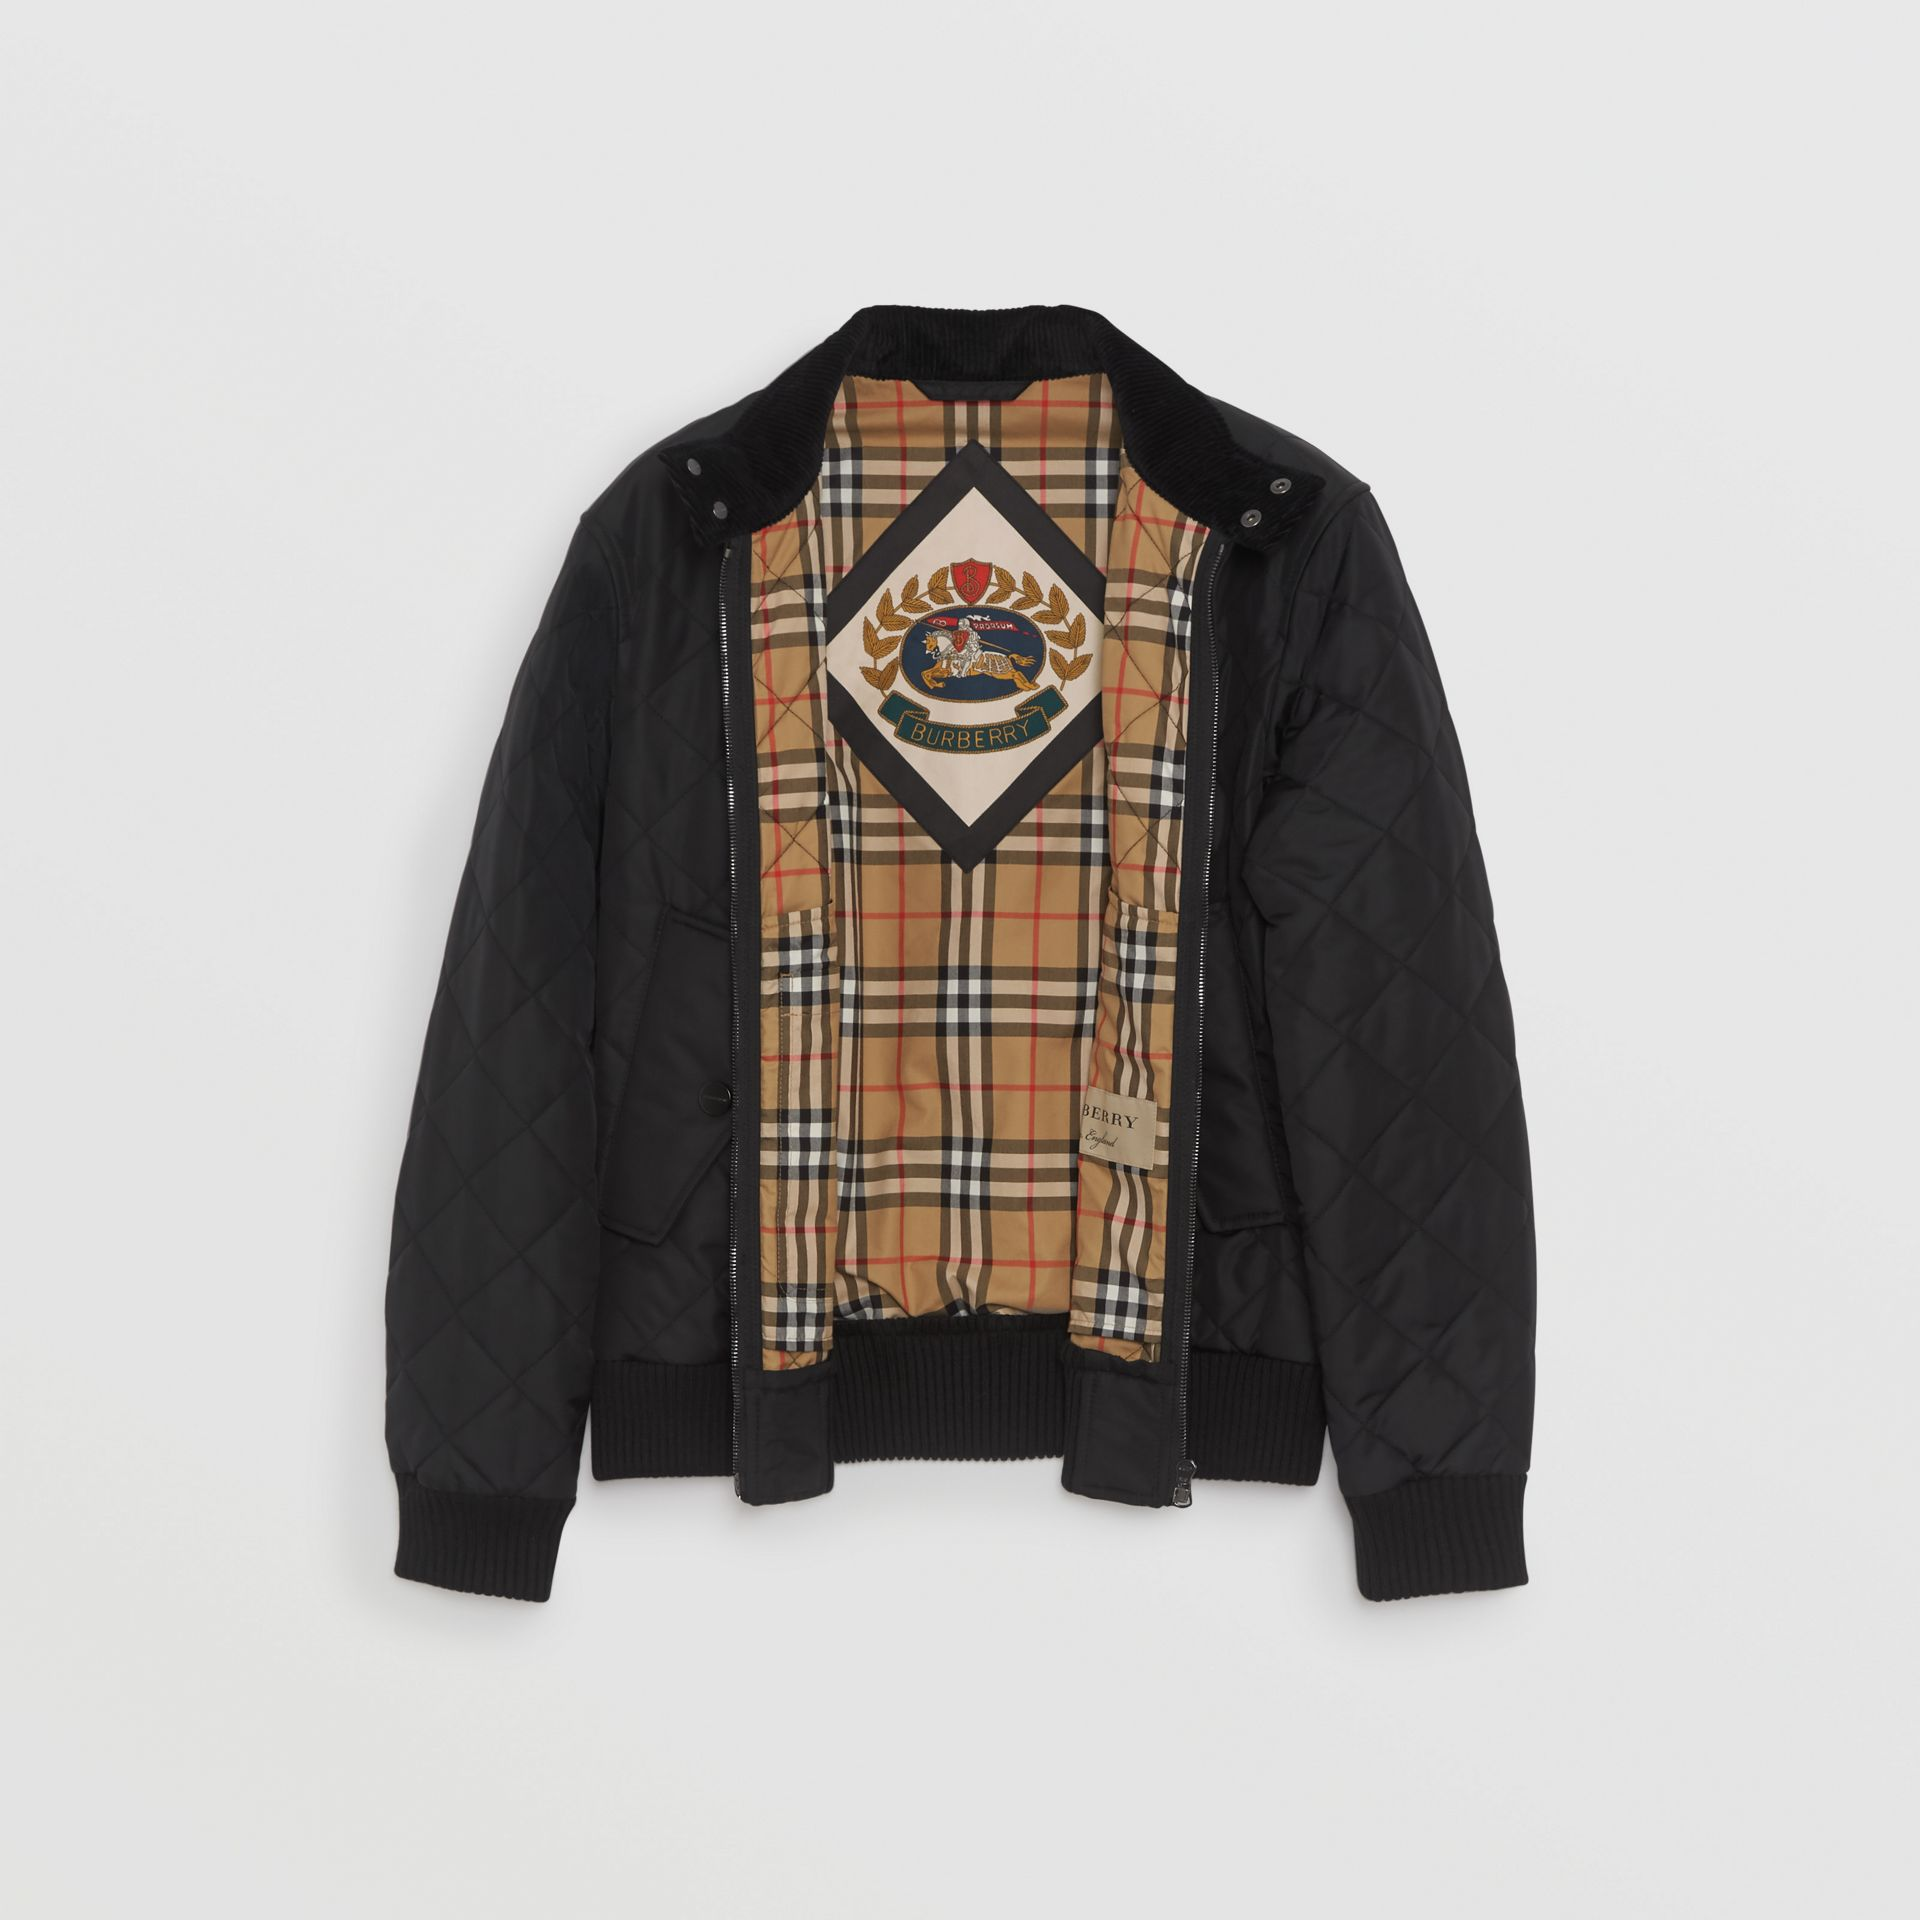 Veste Harrington thermorégulée matelassée (Noir) - Homme | Burberry Canada - photo de la galerie 3